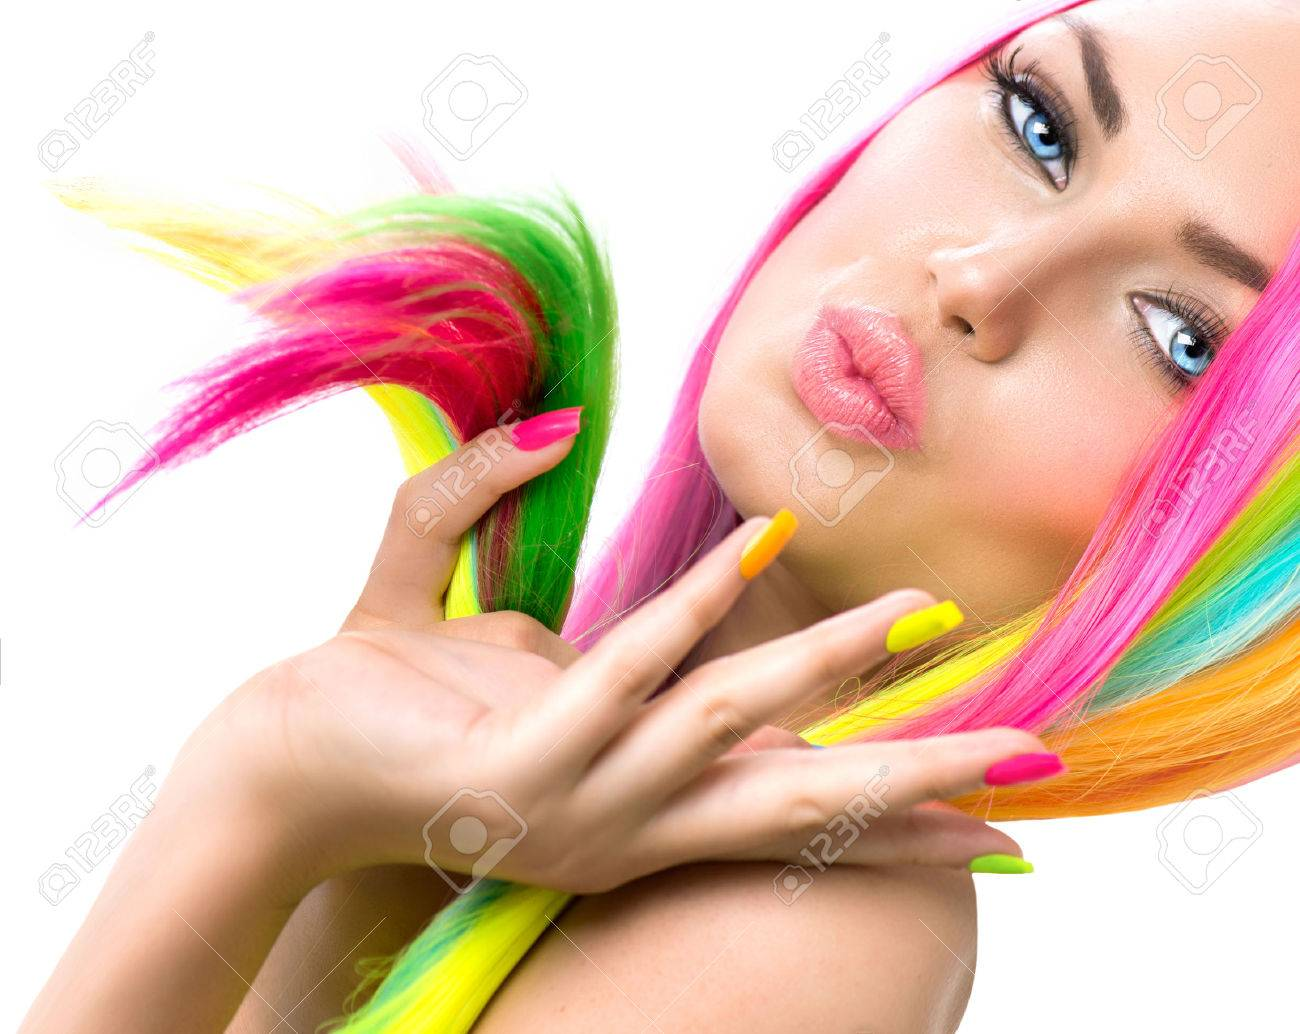 Beauty Girl Portrait with Colorful Makeup, Hair and Nail polish - 29660597